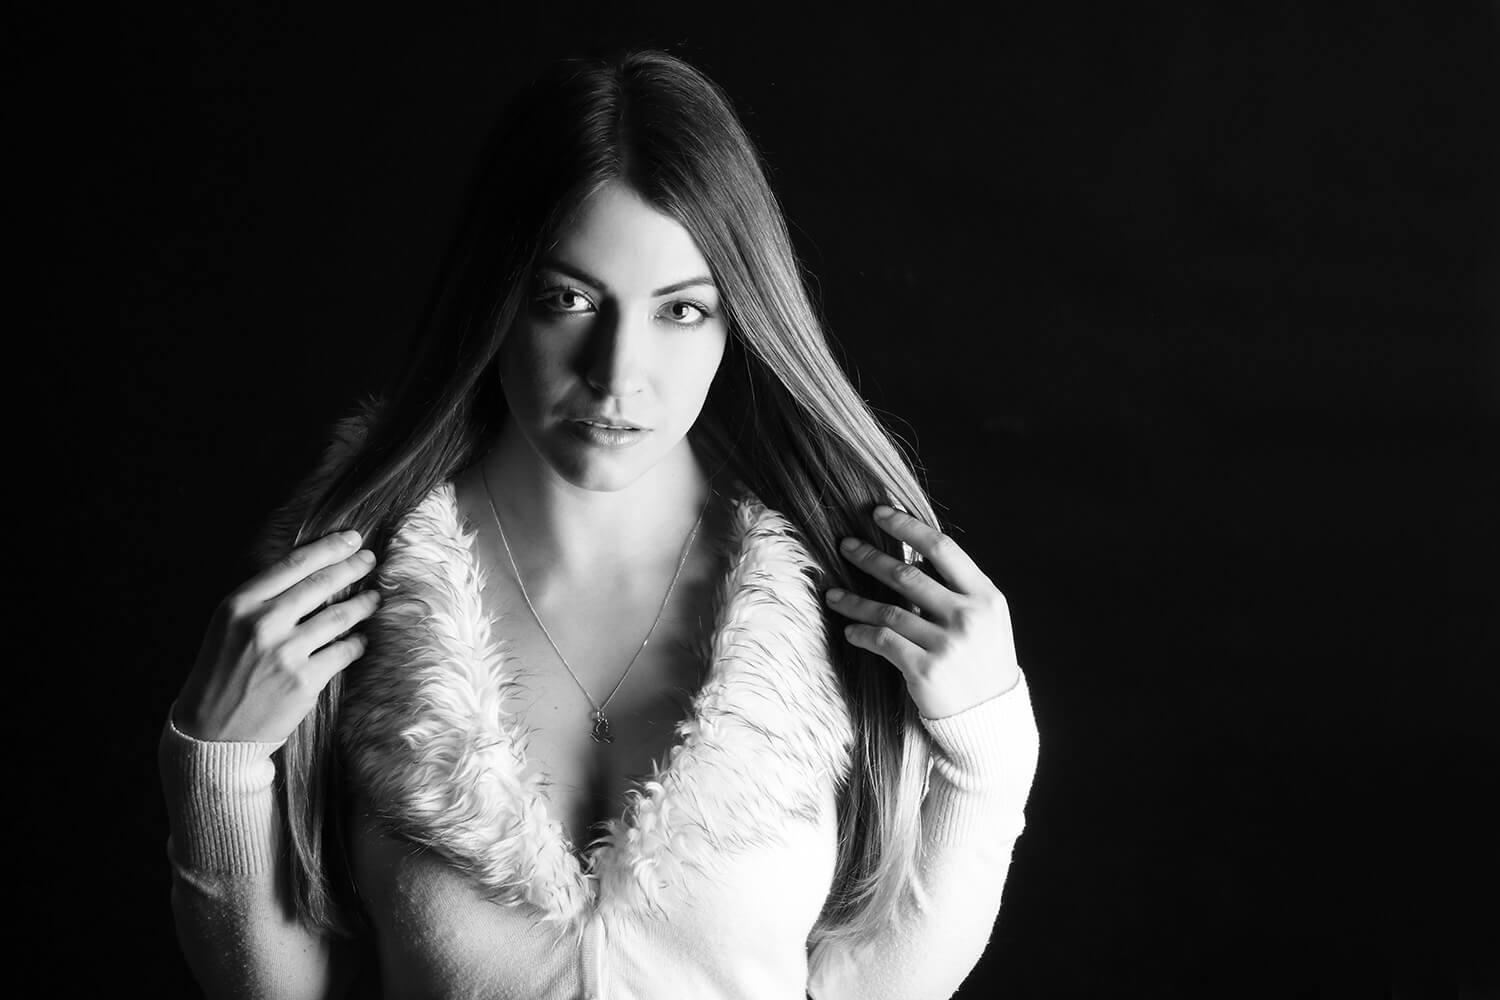 black and white portrait of a woman in a white sweater on a dark background